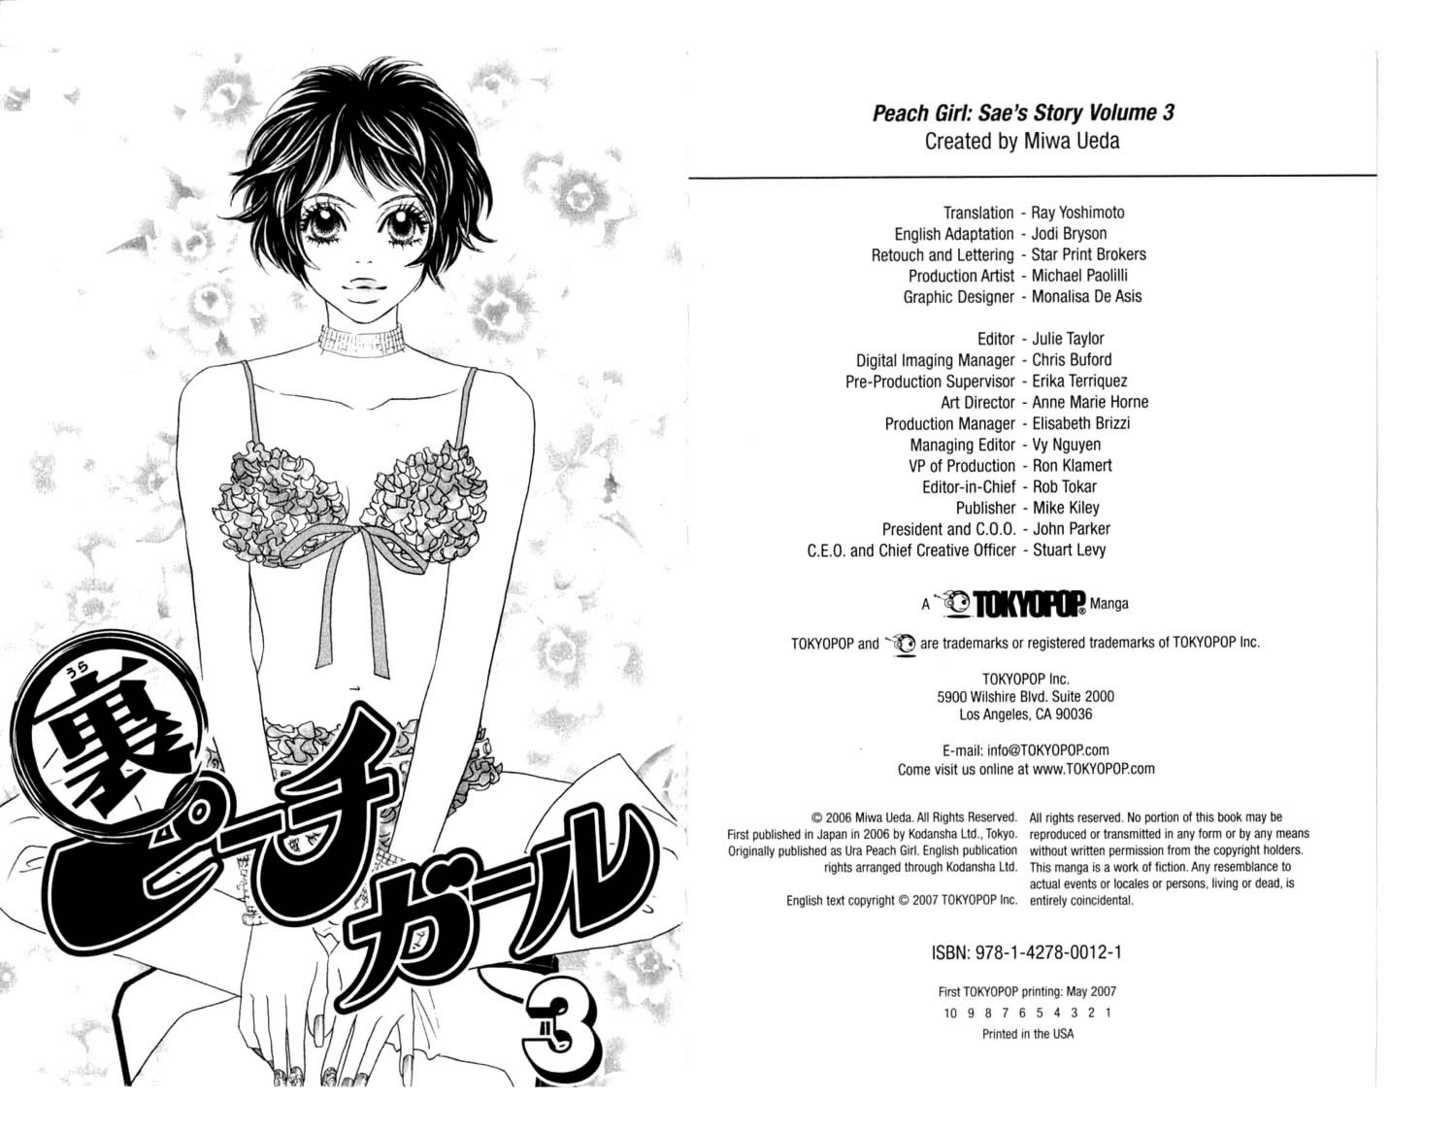 Peach Girl: Sae's Story 0 Page 3